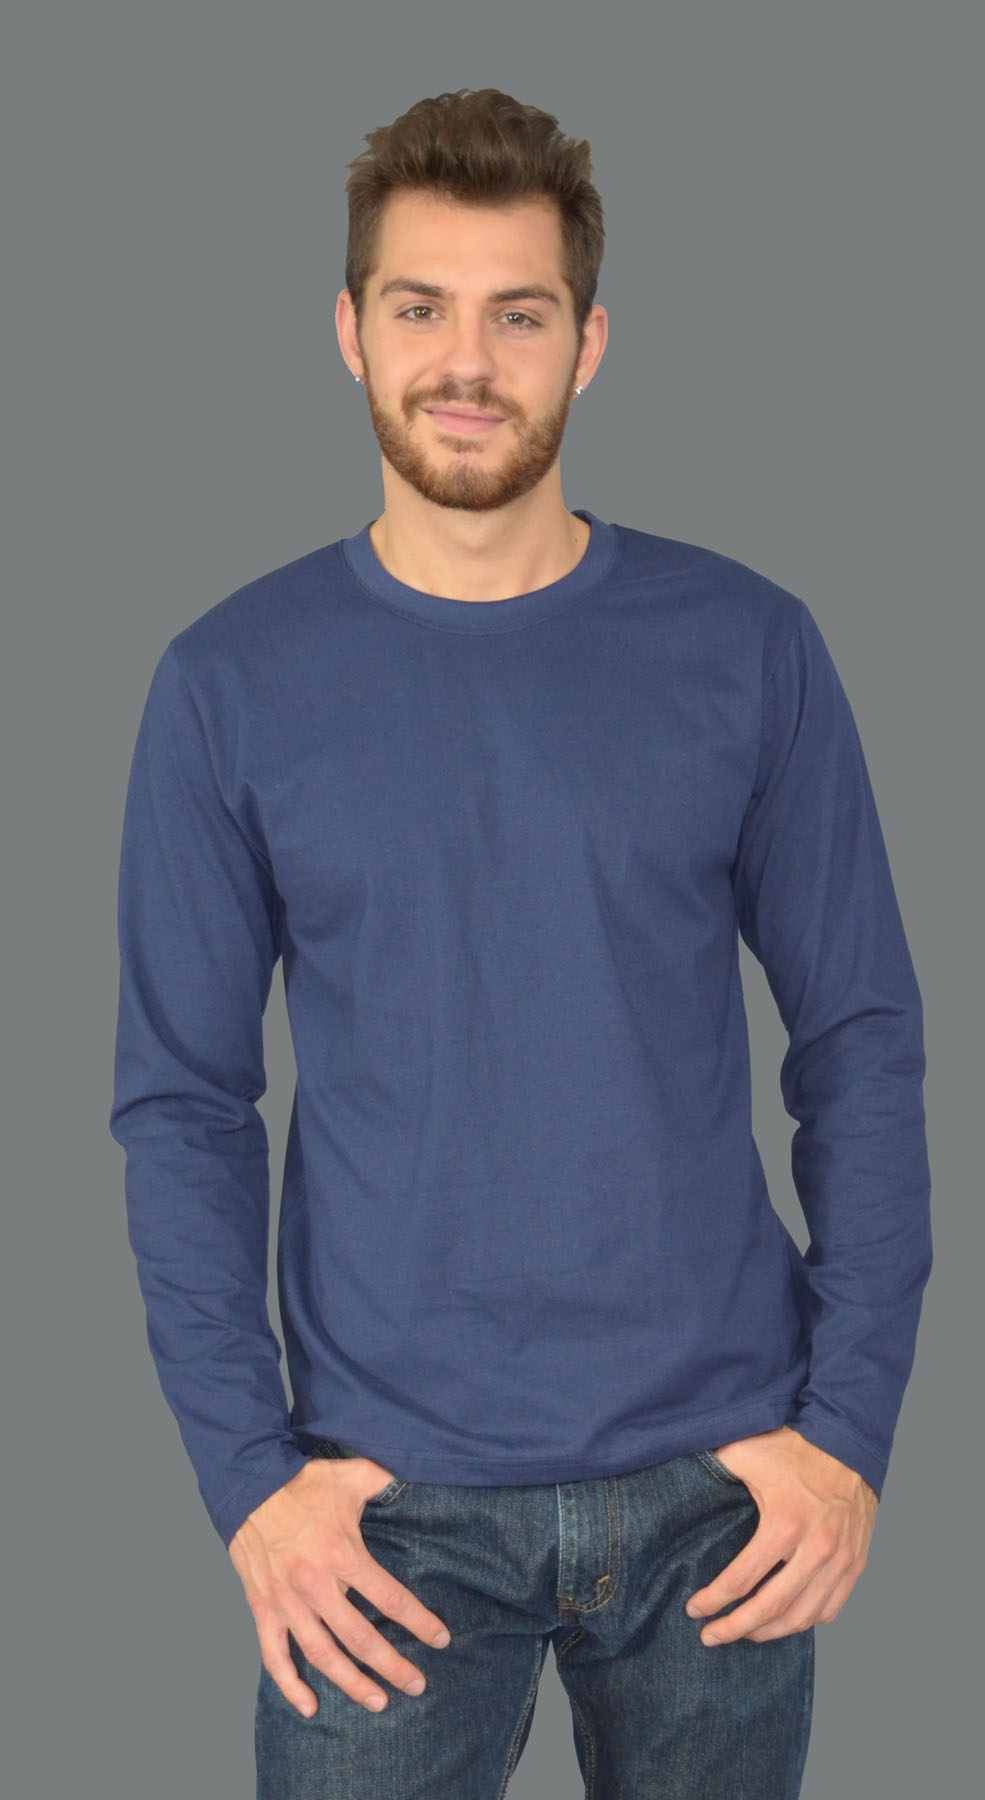 Monag 543005 - Long Sleeve Crew Neck Tee